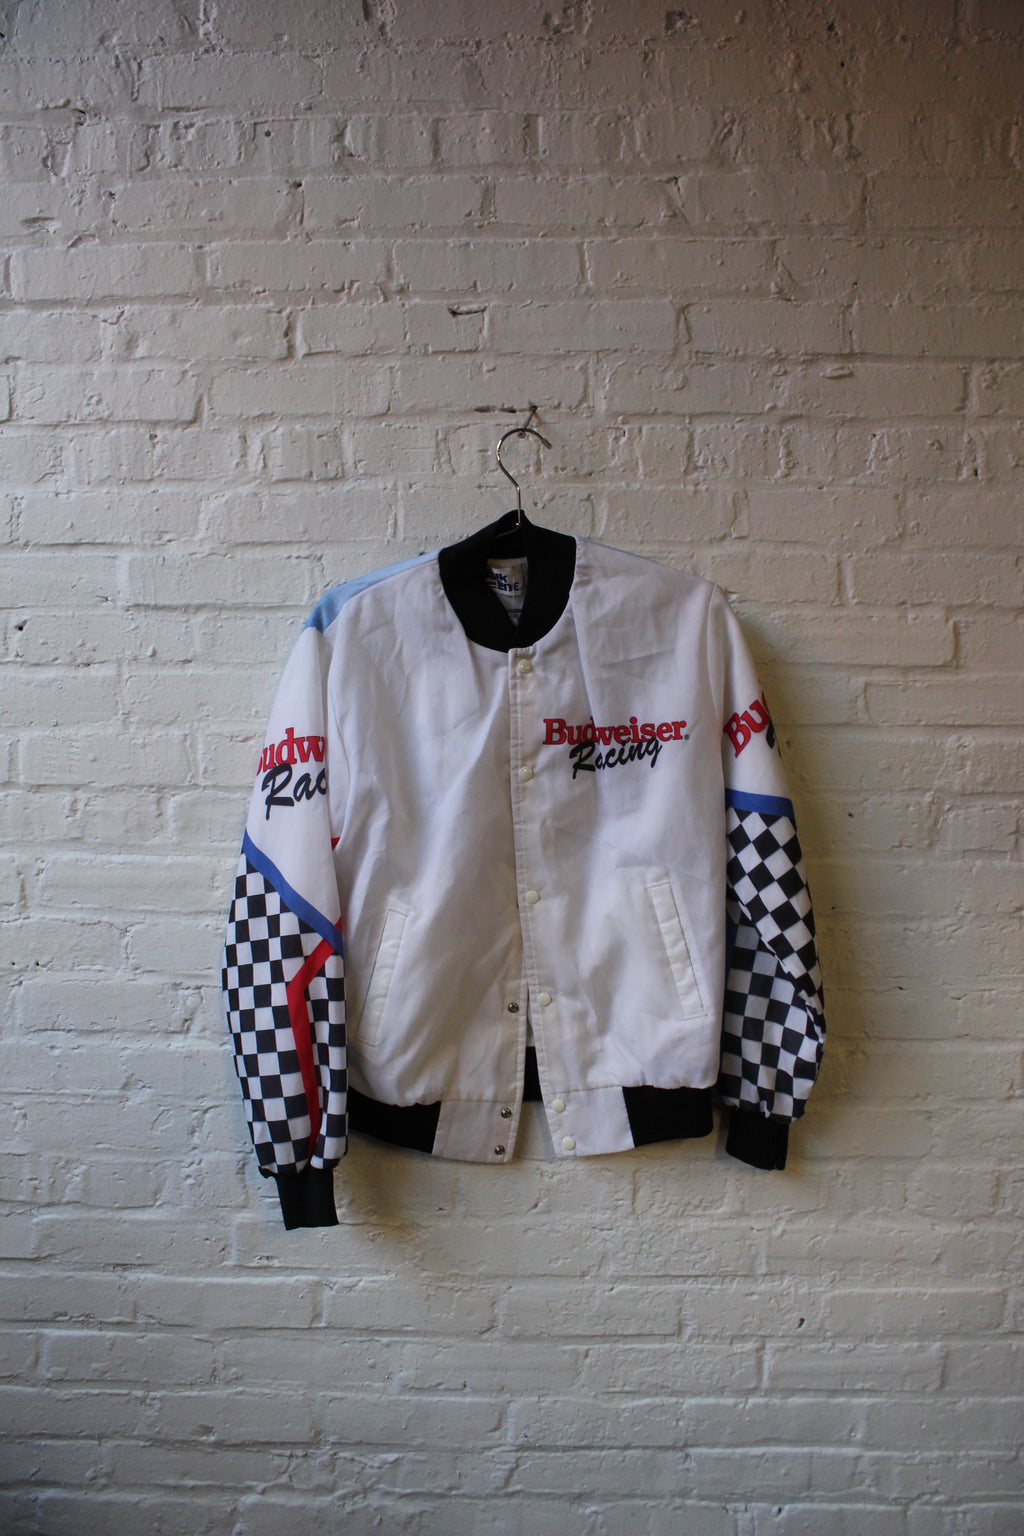 Budweiser Racing Jacket